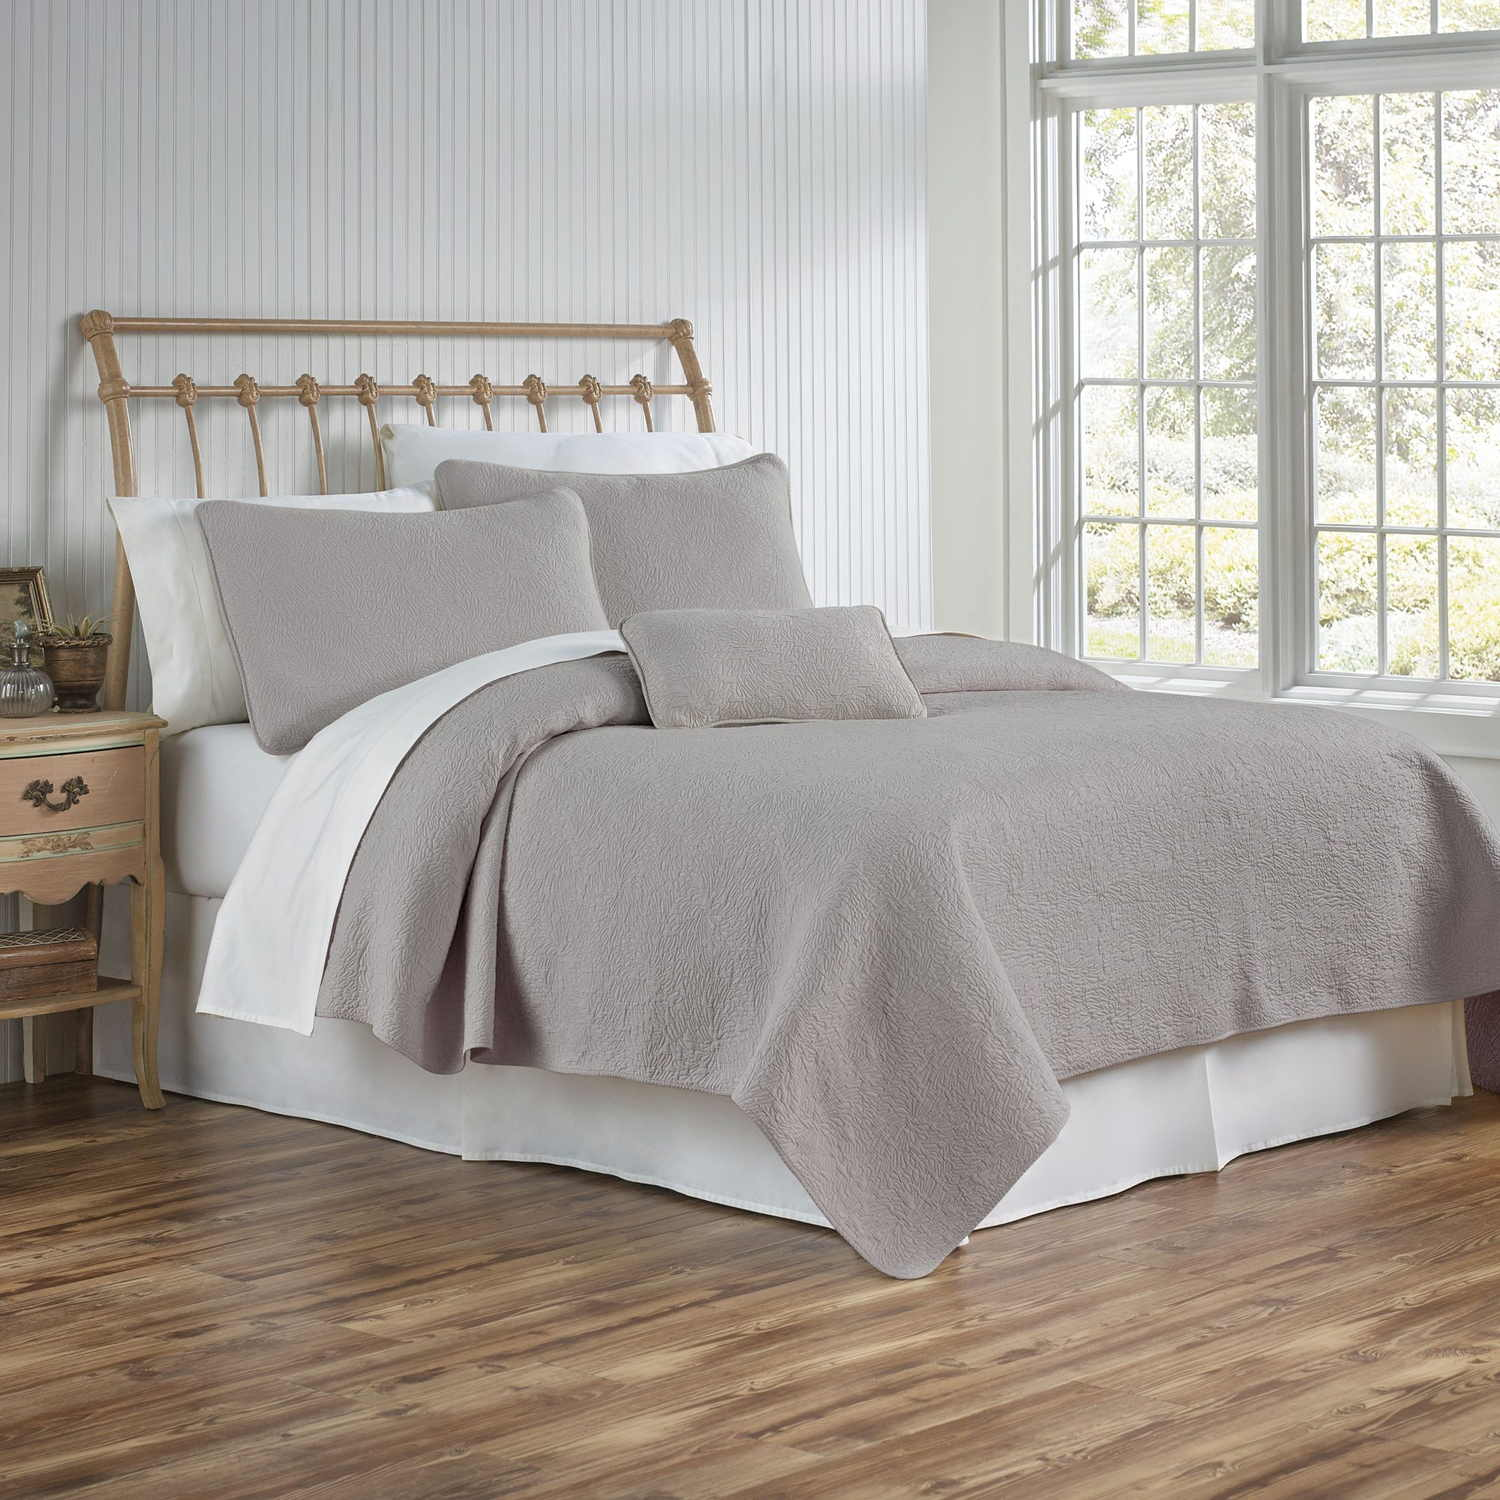 traditions linens couture matelasse coverlet u0026 shams traditions linens bedding couture matelasse coverlet u0026 shams - Matelasse Bedding